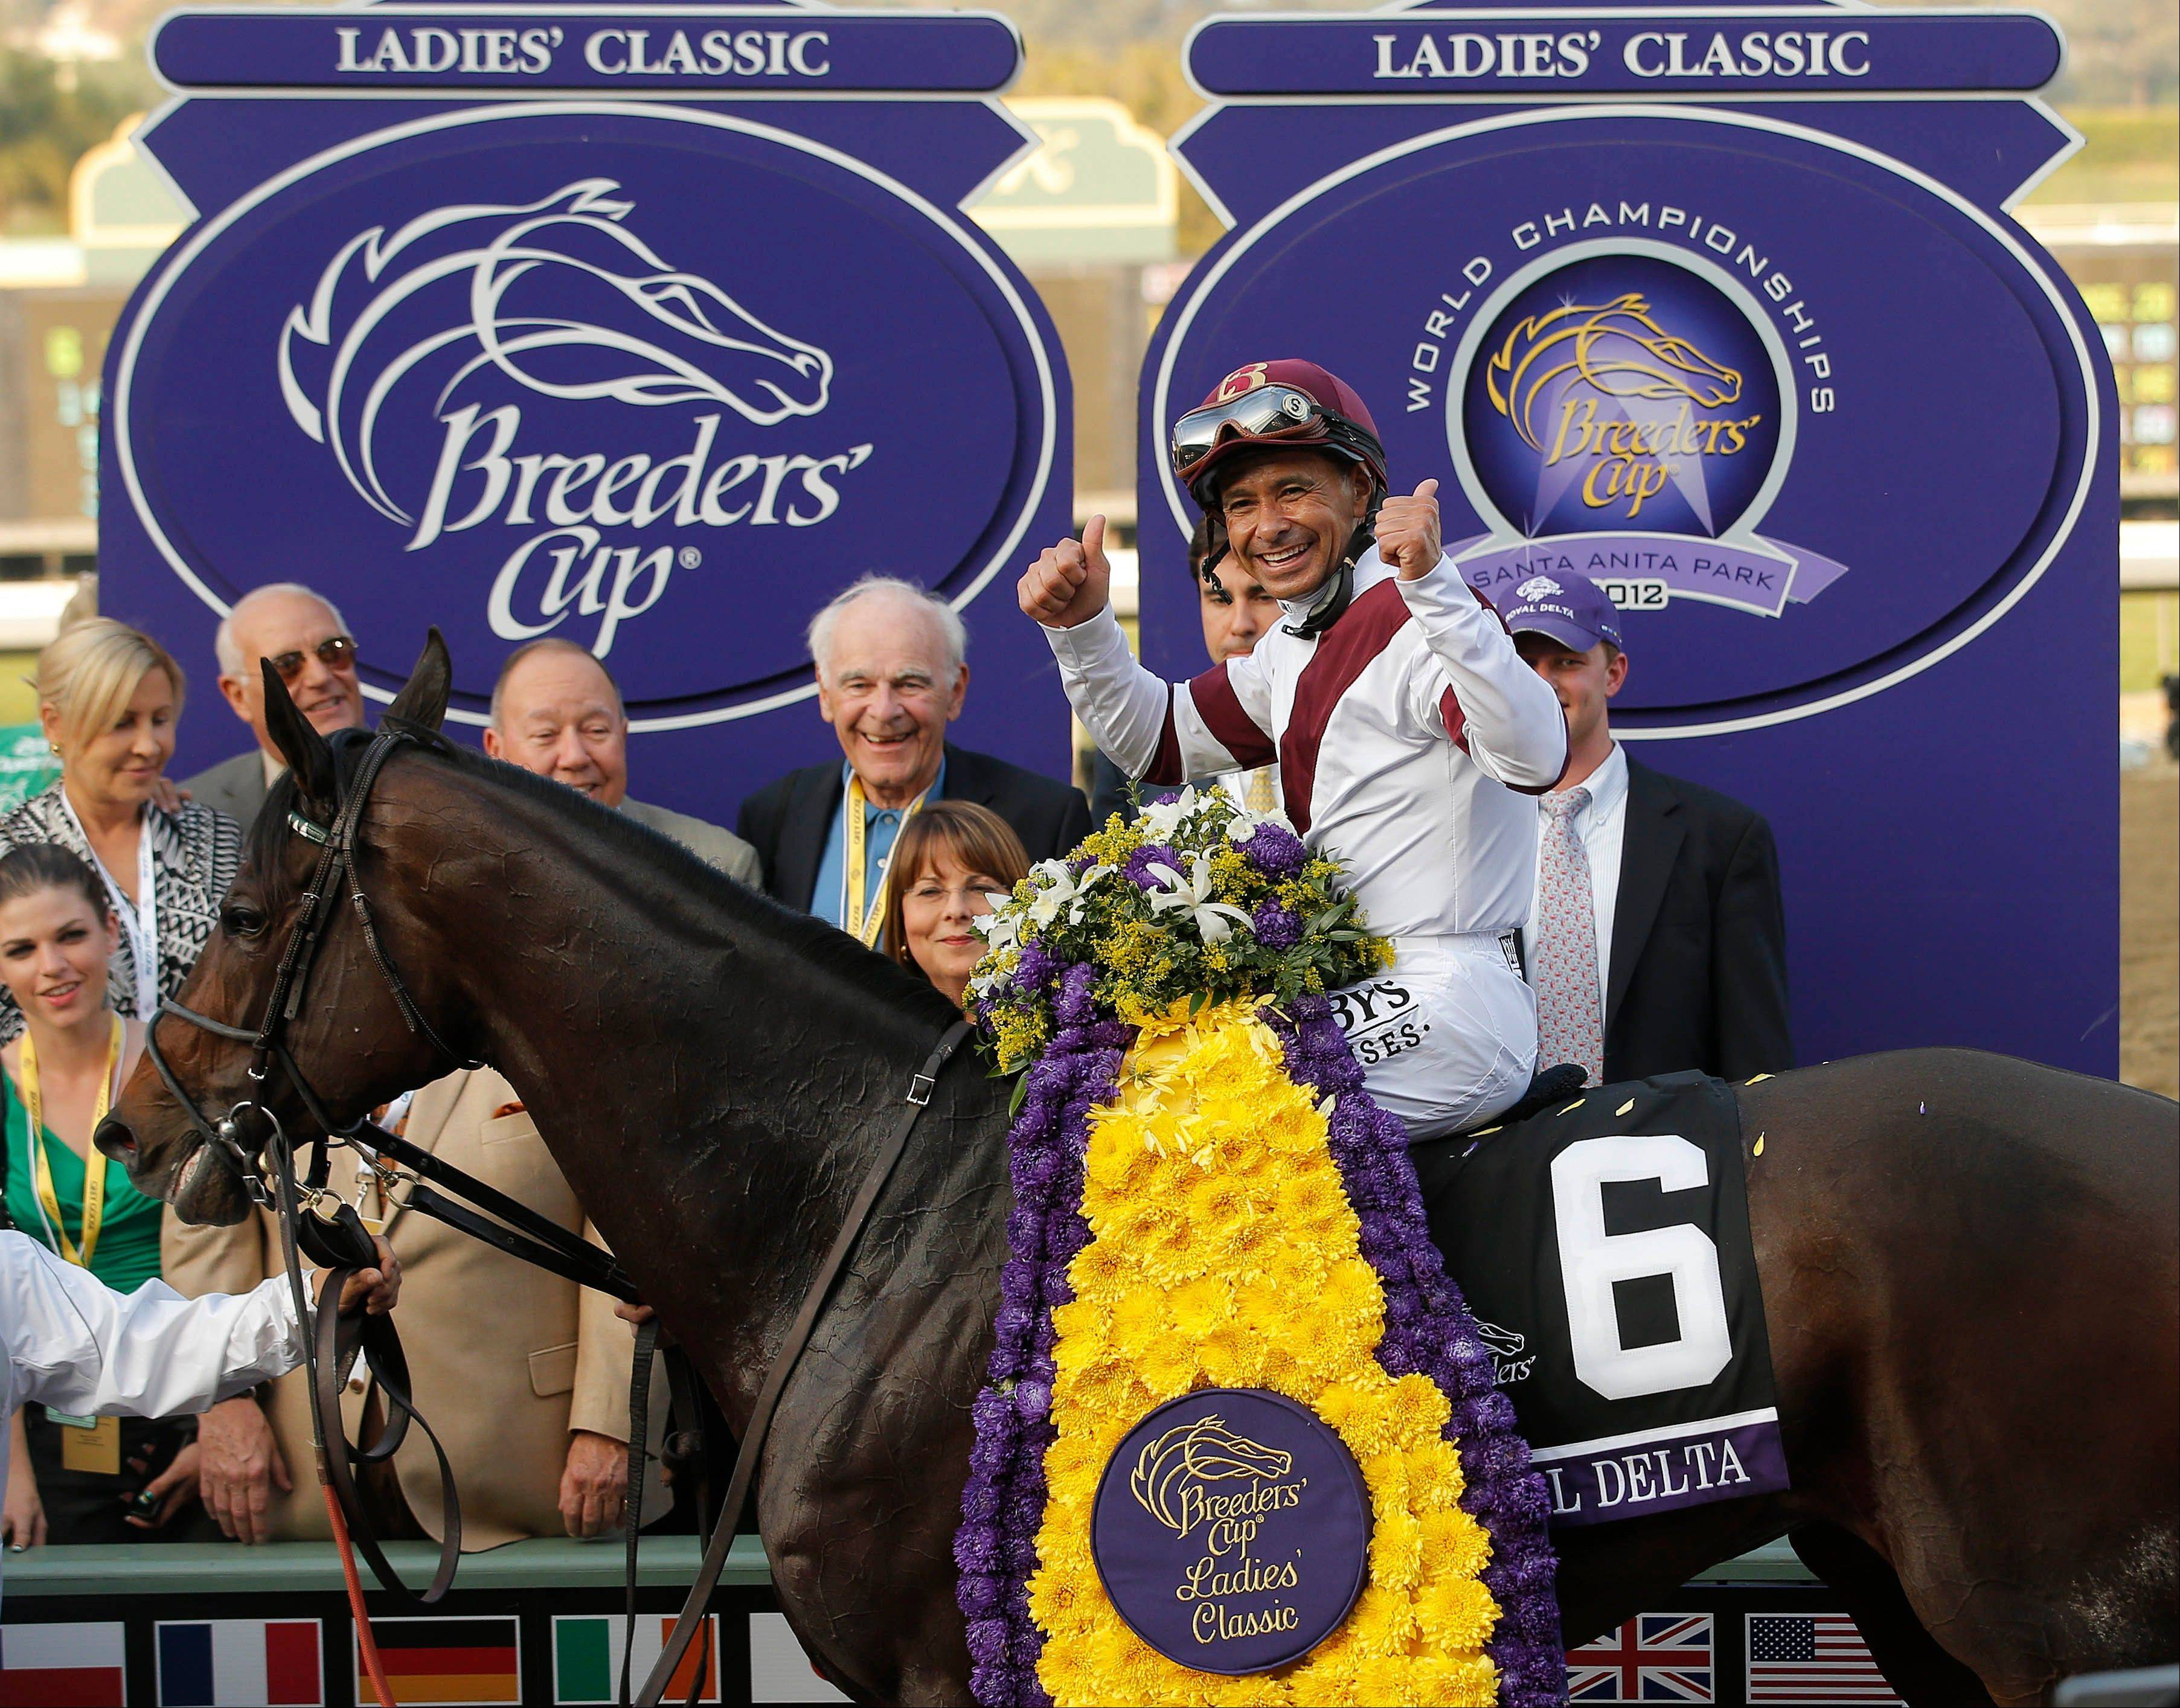 Jockey Mike Smith and Royal Delta led all the way Friday to win Breeders' Cup Ladies' Classic at Santa Anita.